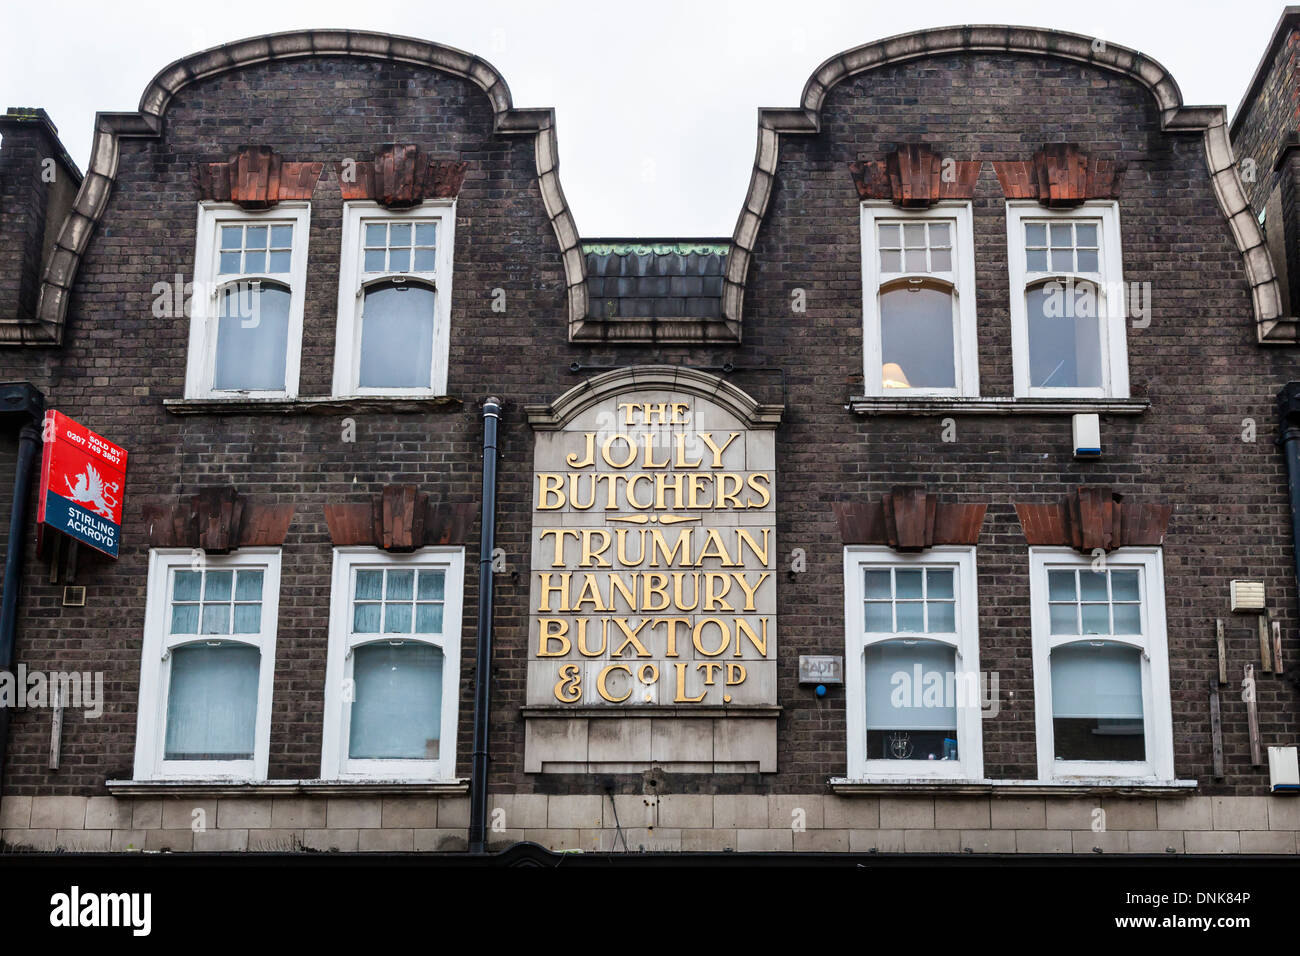 'The Jolly Butchers' Truman Brewery sign on old building in Brick lane, East London, UK - Stock Image